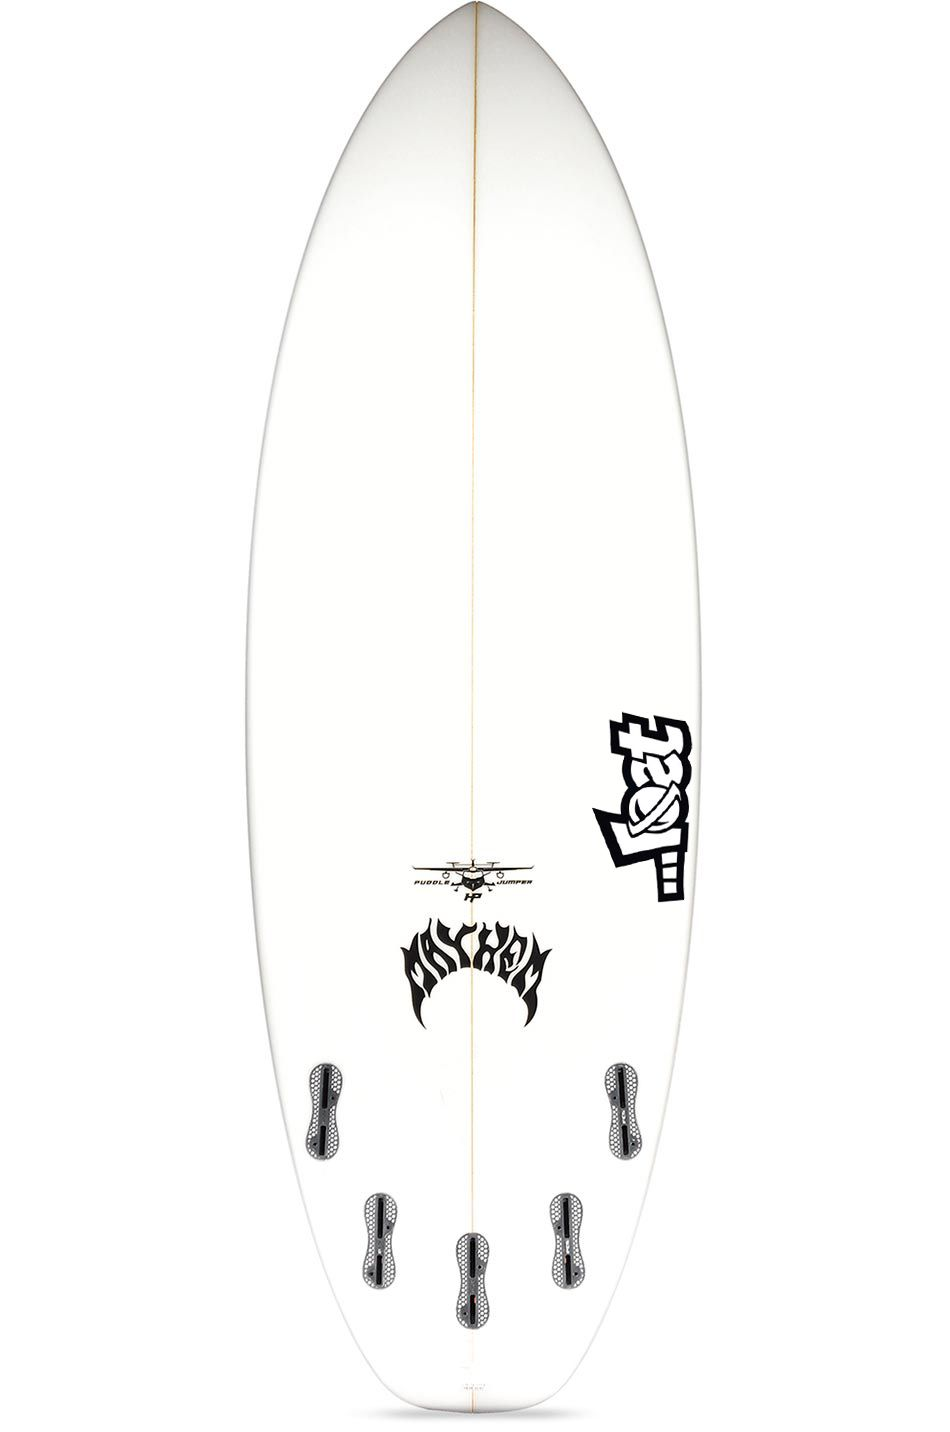 Prancha Surf Lost PUDDLE JUMPER HP 5'9 Squash Tail - White FCS II Multisystem 5ft9